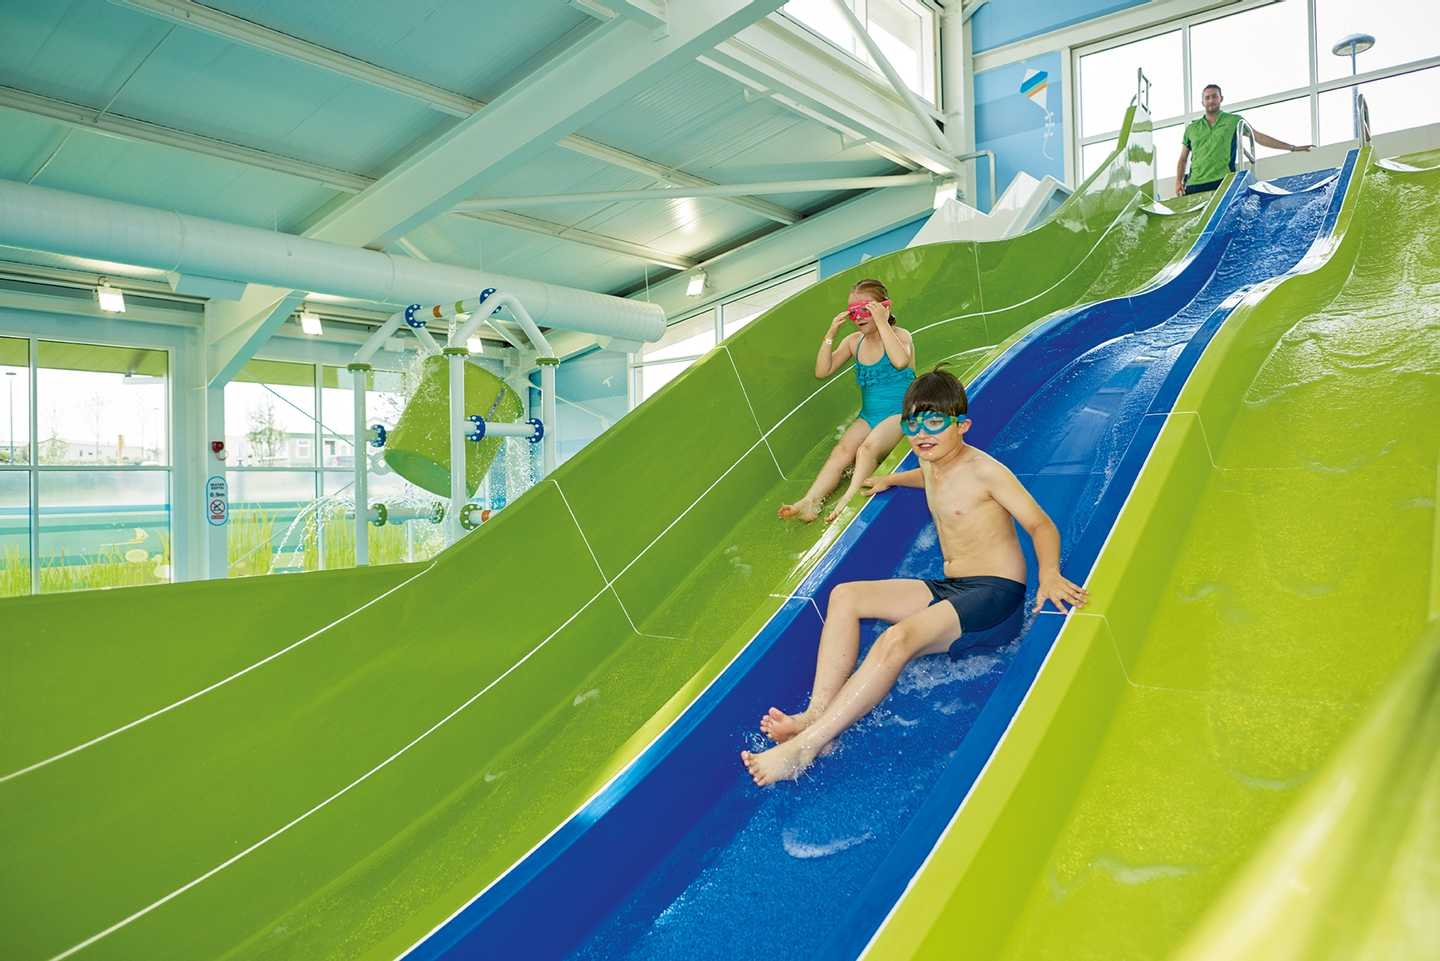 Guests whooshing down the indoor water slide